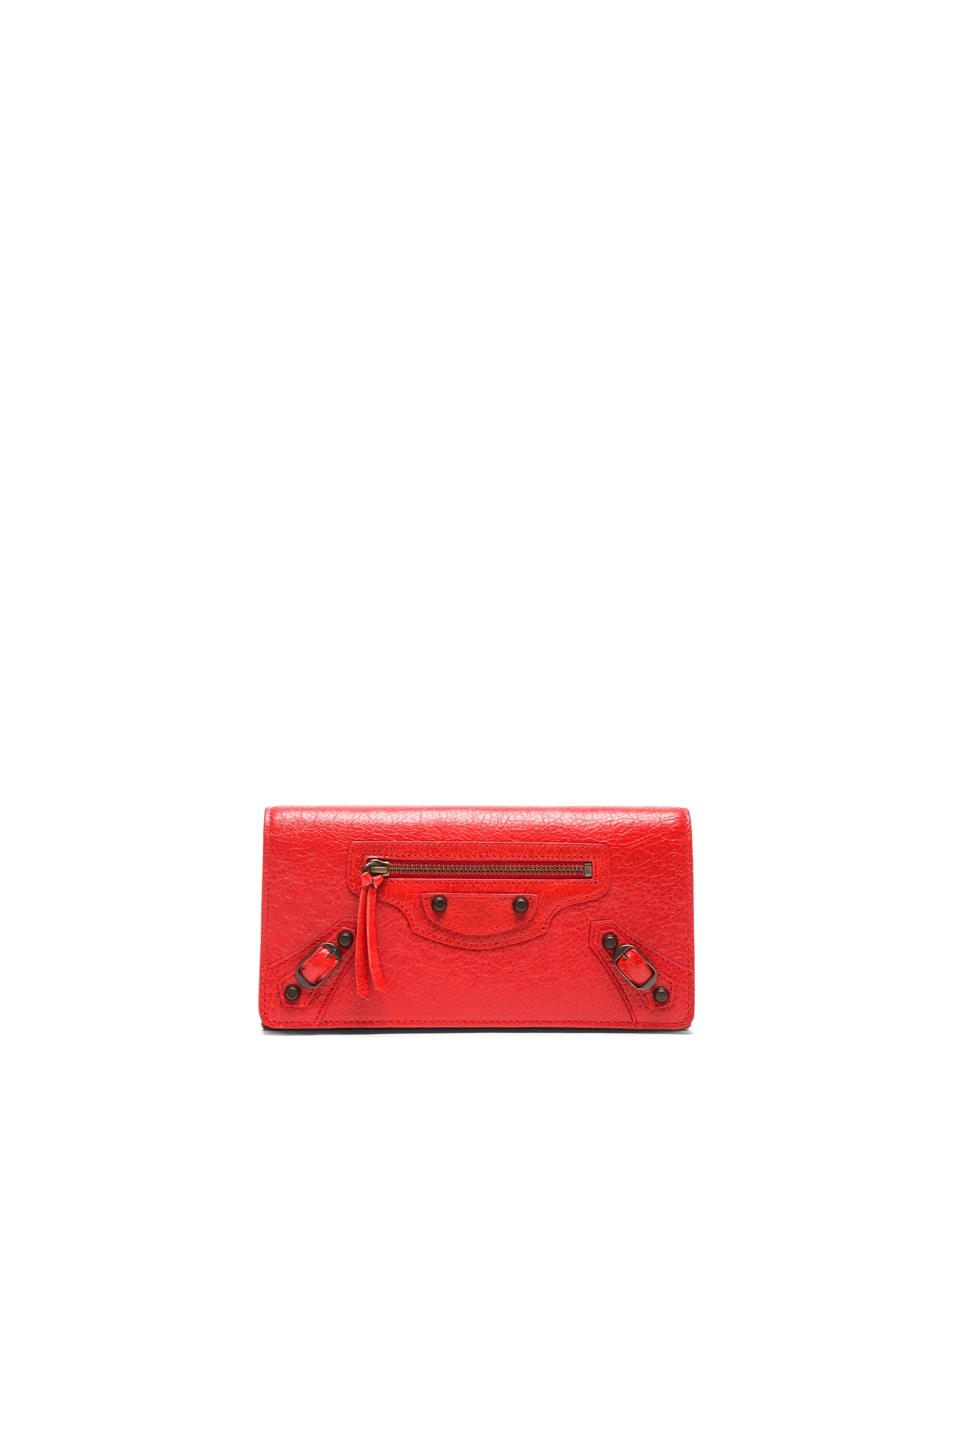 Image 1 of Balenciaga Classic Arena Money Wallet in Poppy Red